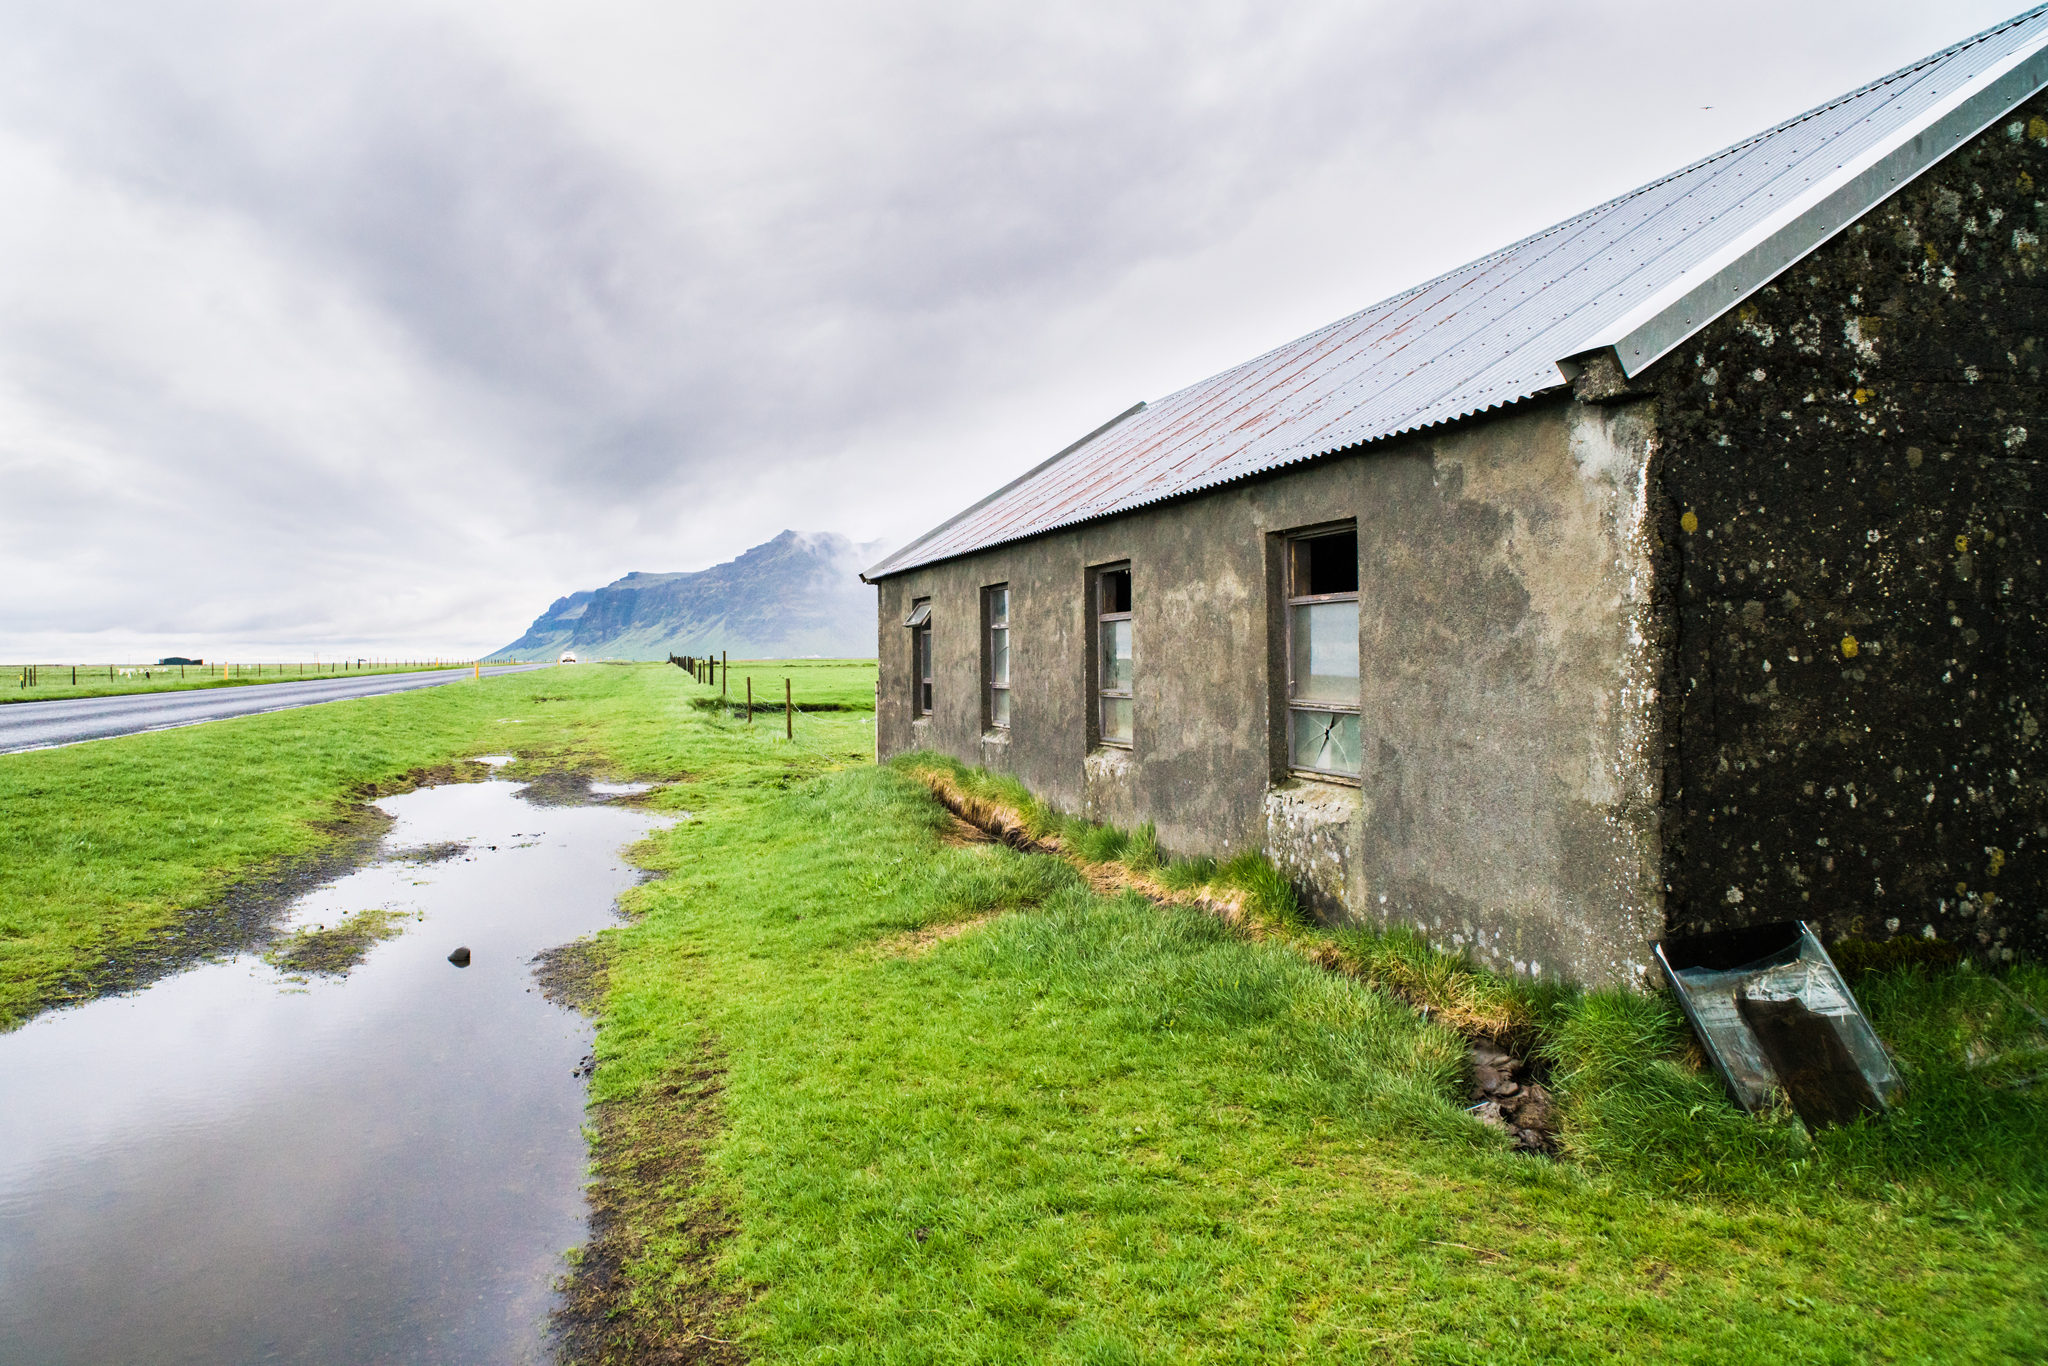 I  wrote recently  about looking for what's less obvious. This home isn't a landmark or an attraction, or anything you'll find in a travel guide to Iceland. It's just what was across the way when my good friend Rebecca Missel and I stayed at an AirBnB near the country's southern coast, just off the Ring Road. I like what my buyer liked — how the home, the road, the puddle and the clouds all lead to the mountain in the distance. It feels like there's a journey ahead.